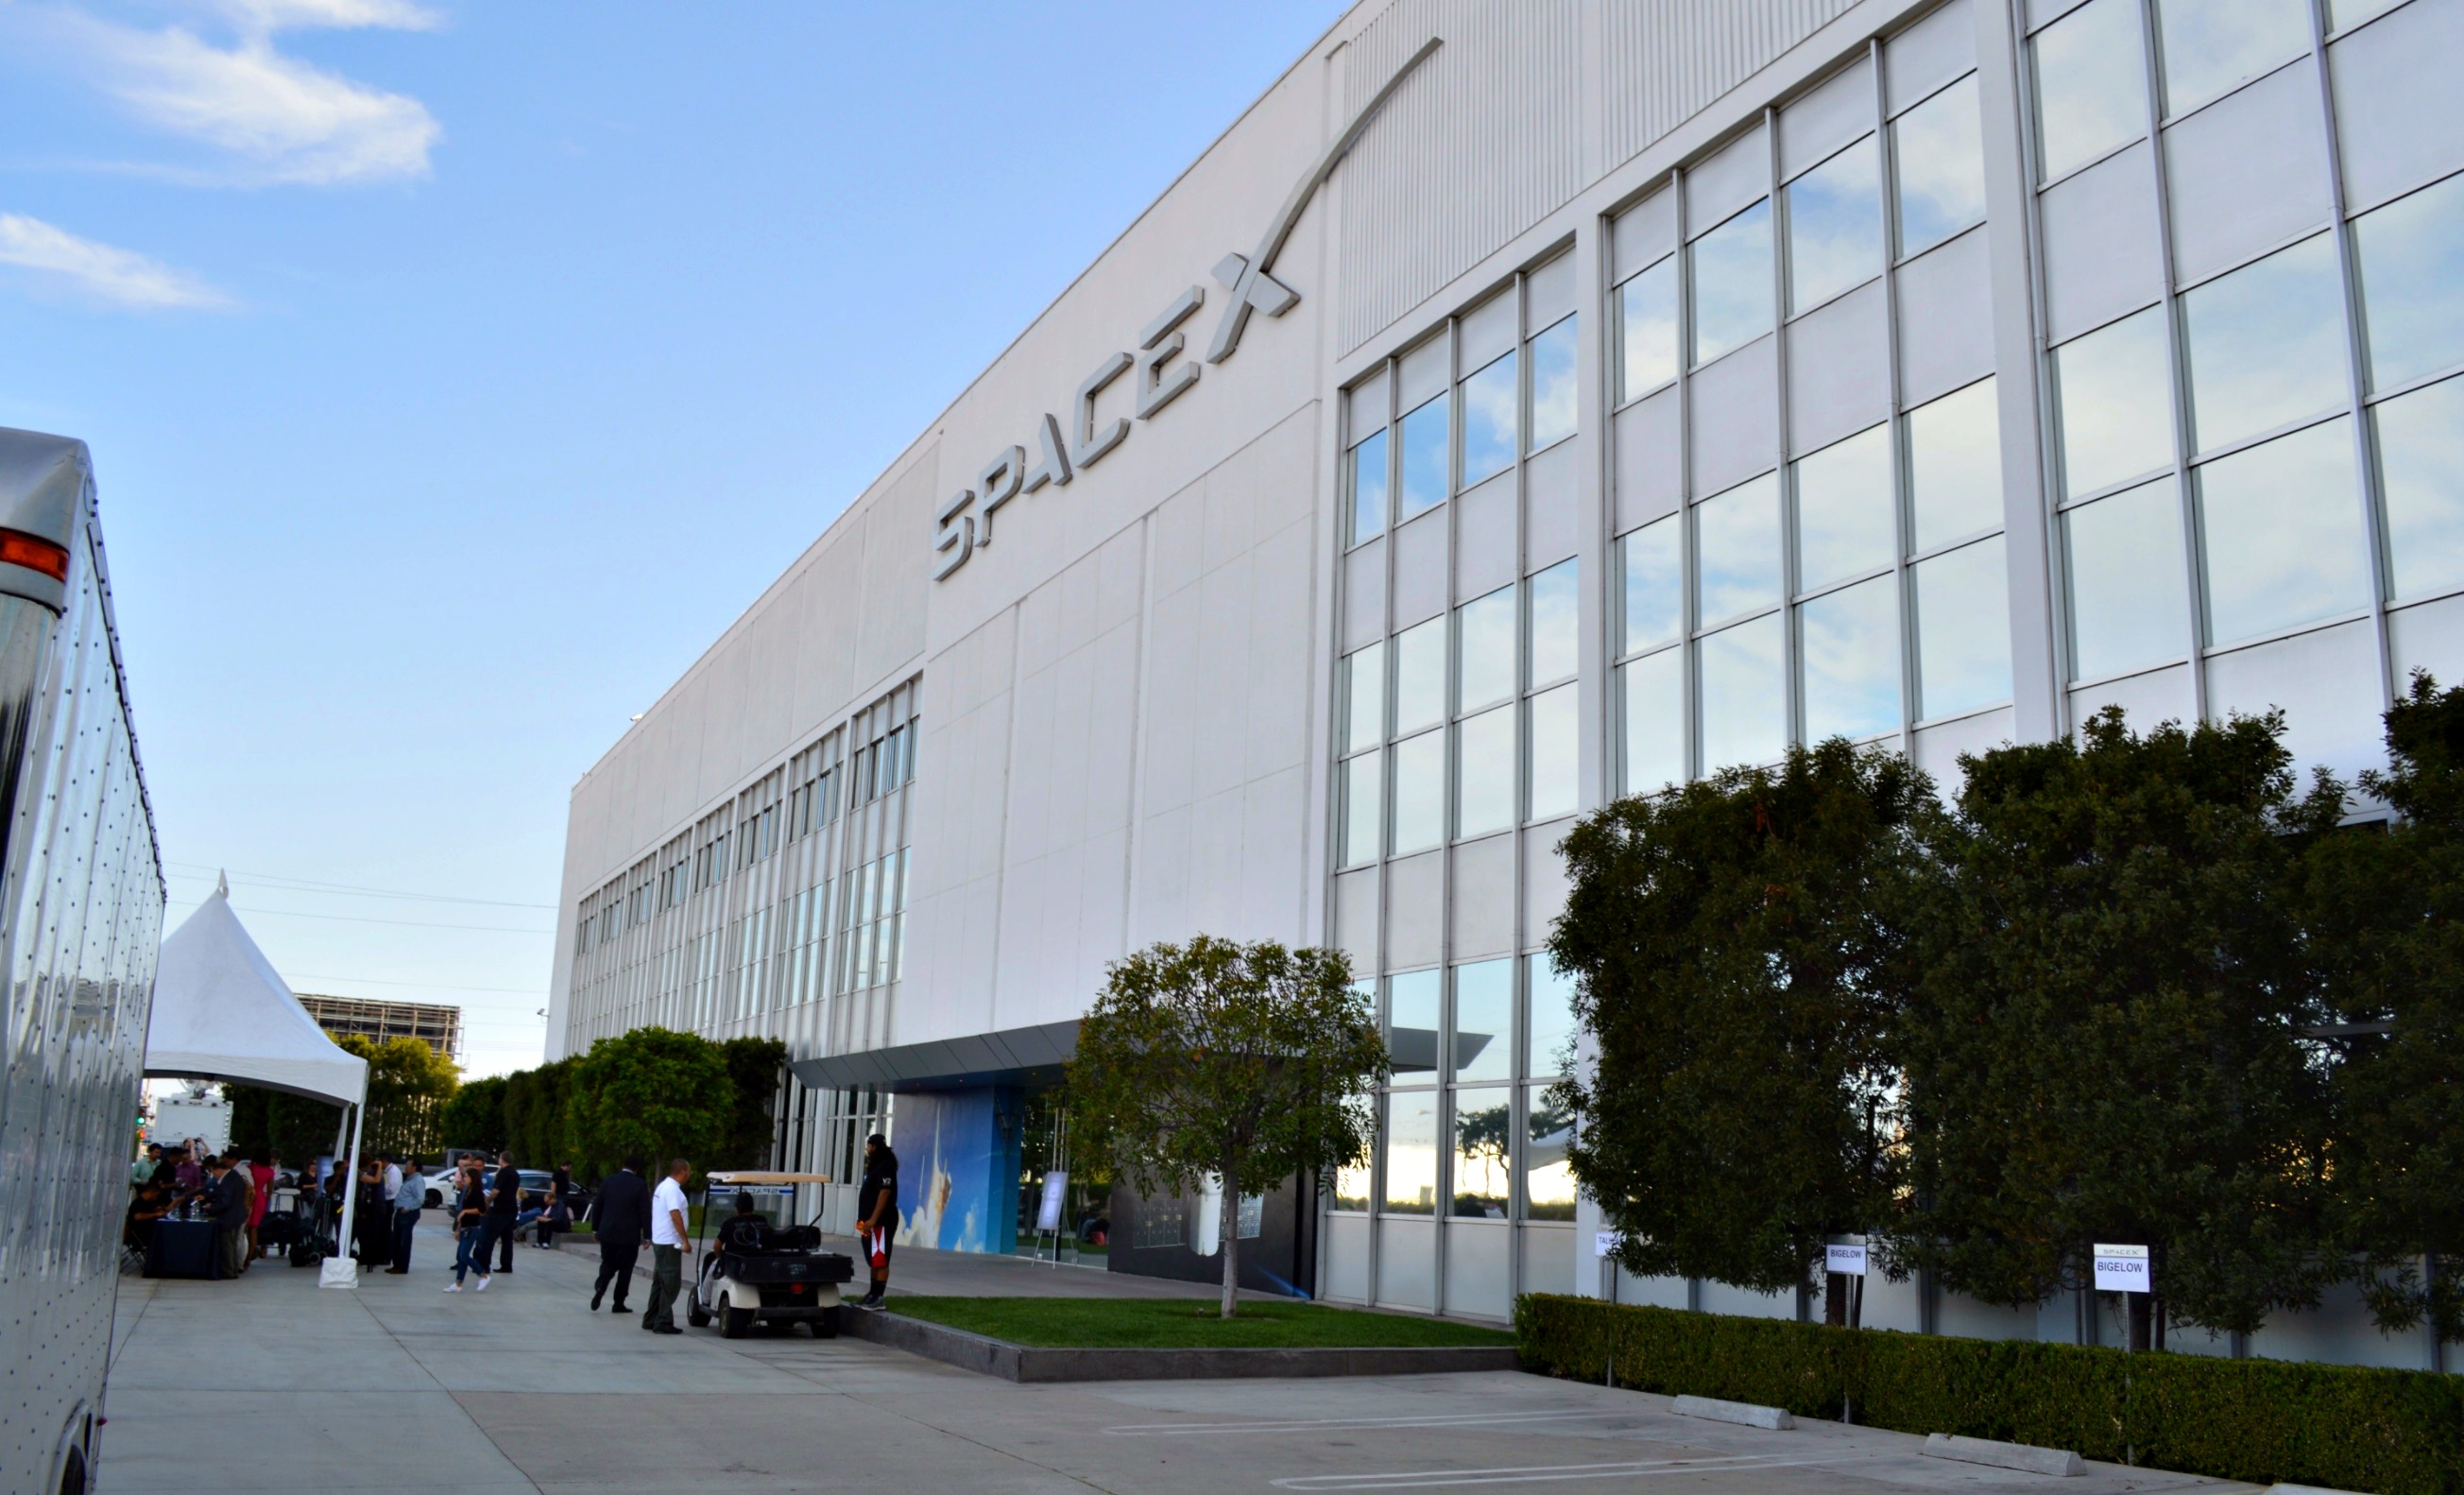 spacex-headquarters-hawthorne